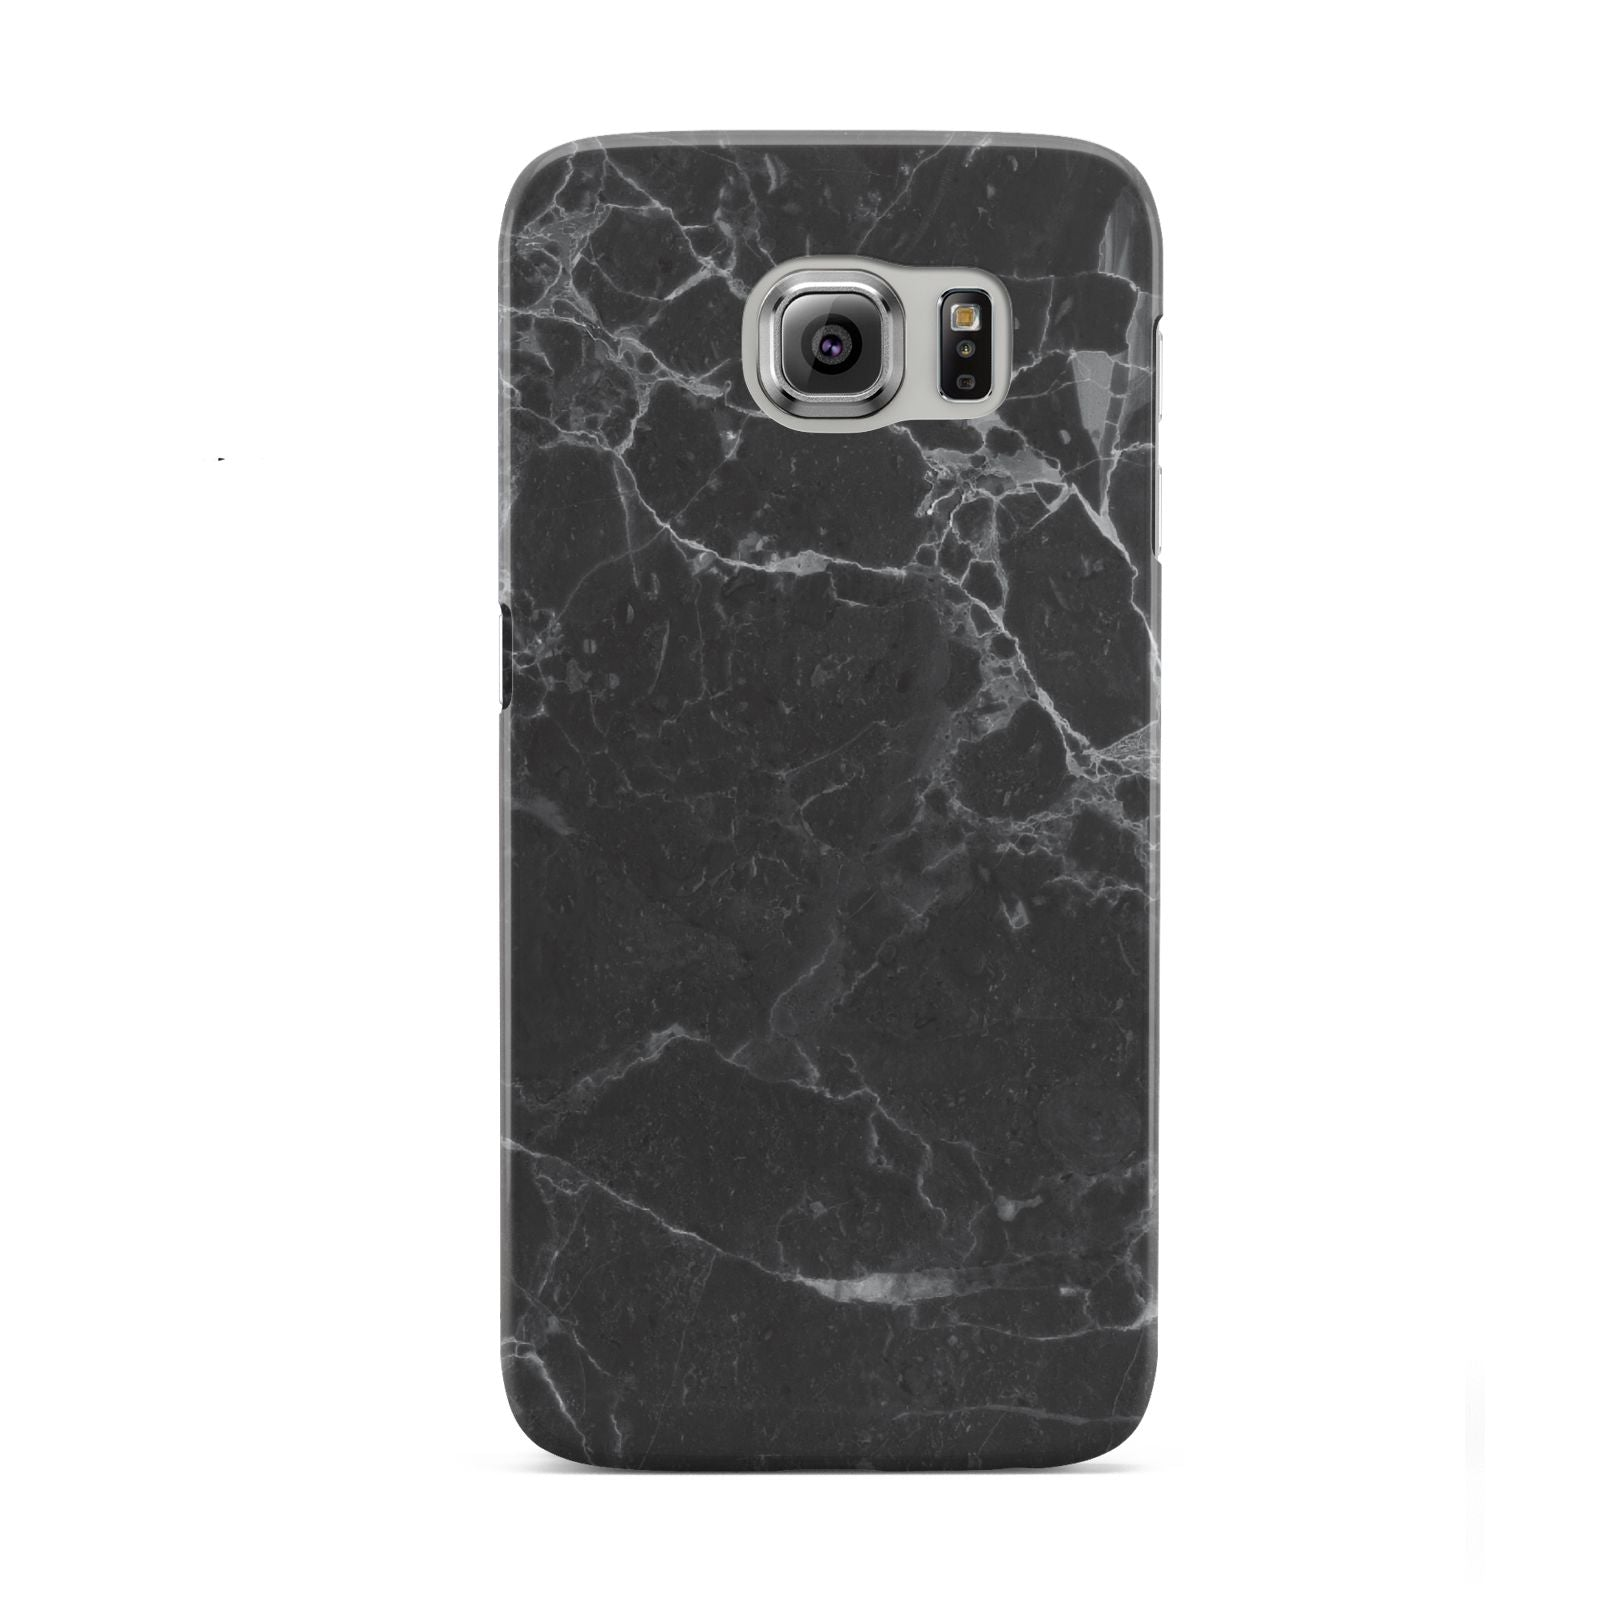 Faux Marble Effect Black Samsung Galaxy S6 Case